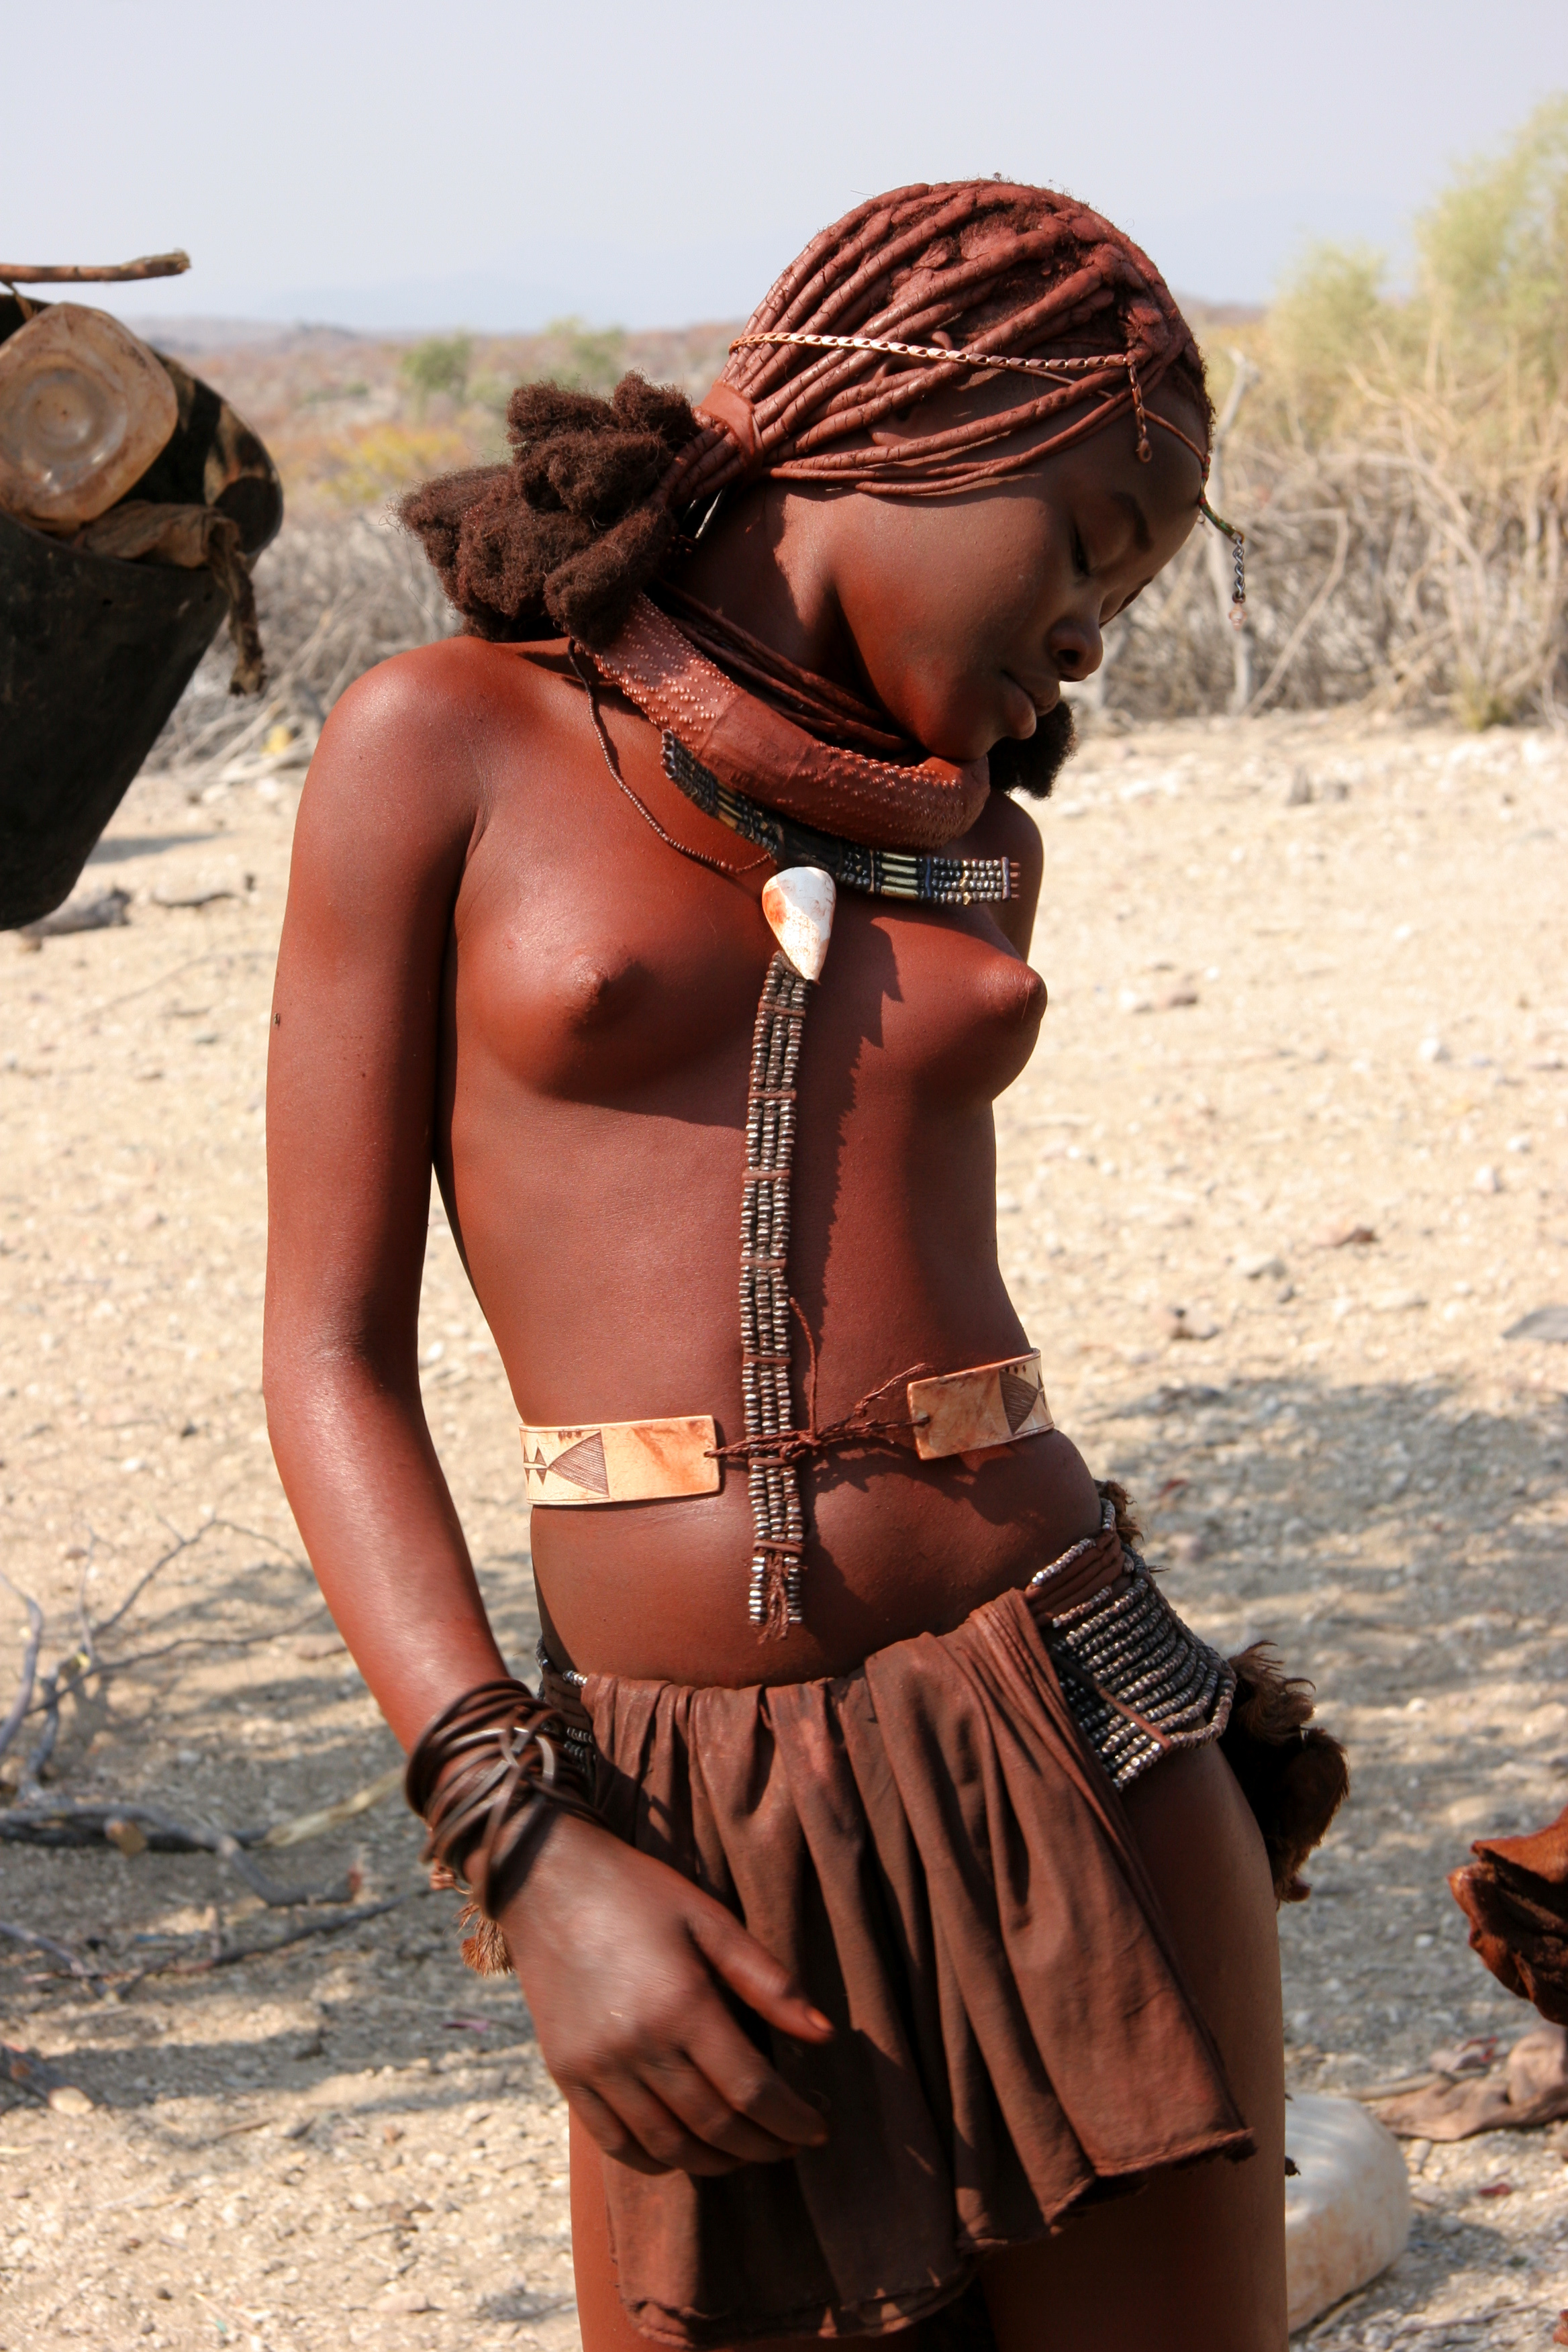 Native african girls nude remarkable, amusing